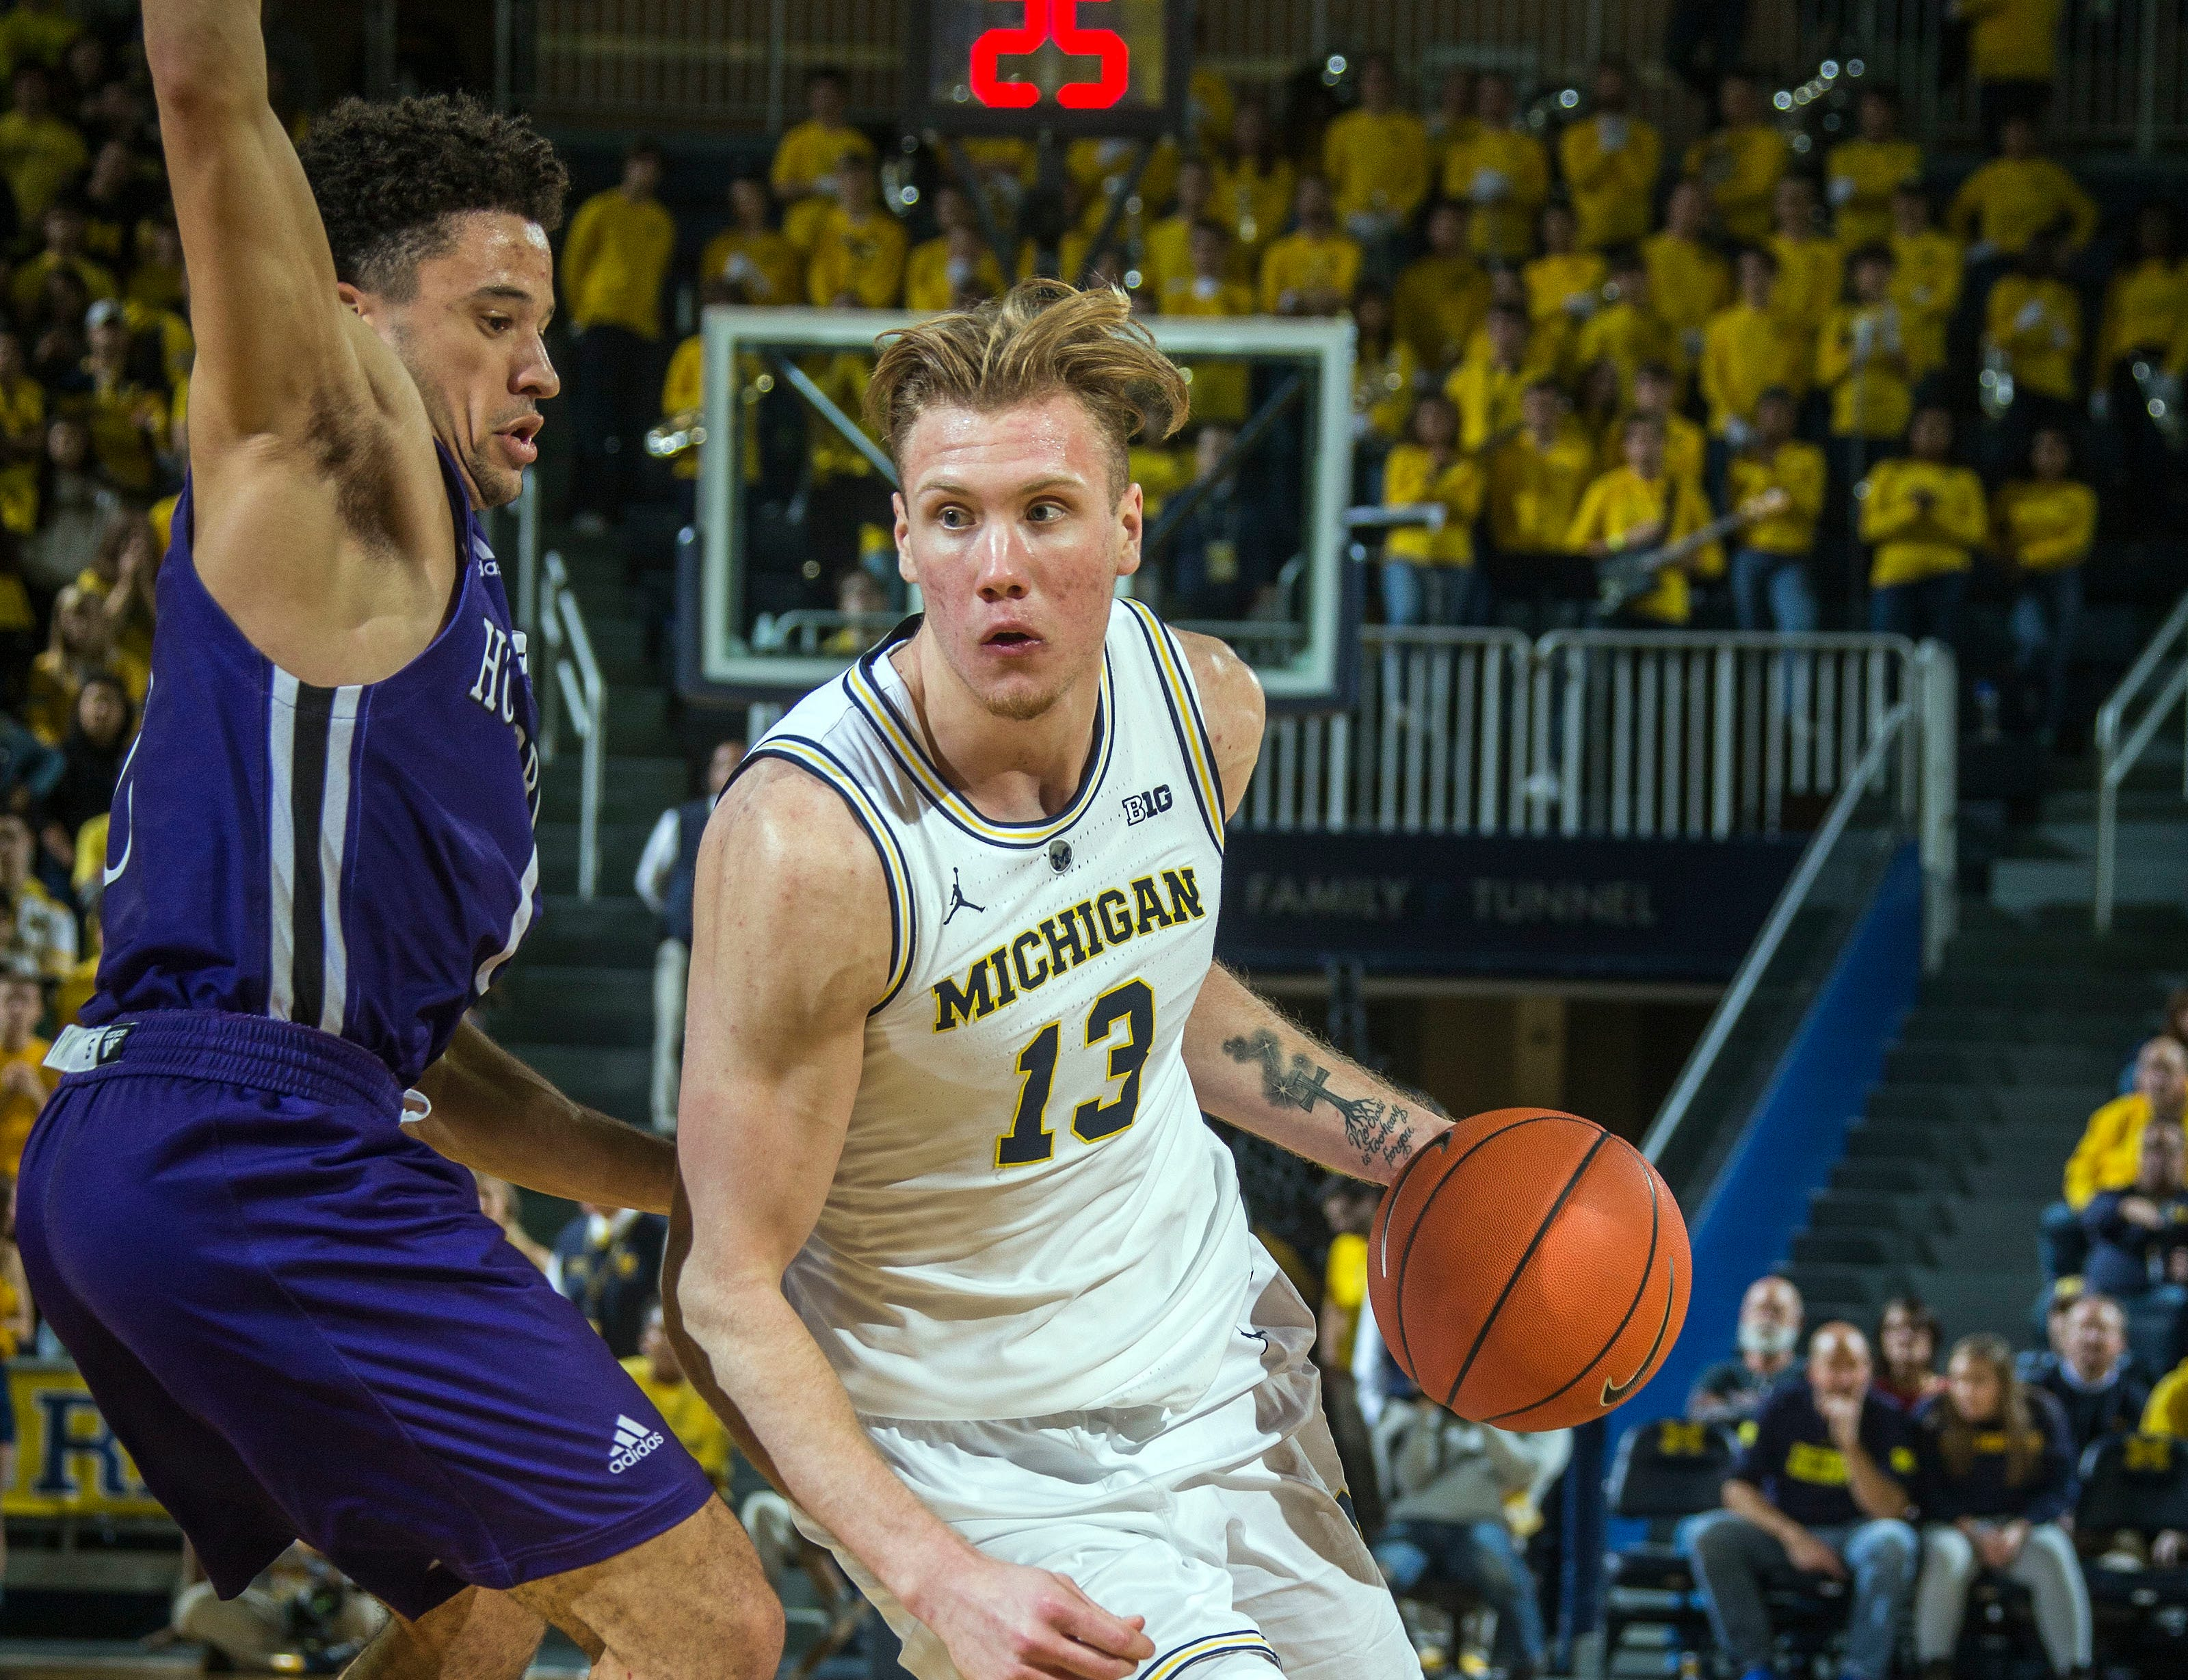 Holy Cross guard Caleb Green, left, defends against Michigan forward Ignas Brazdeikis (13) in the second half of an NCAA college basketball game at Crisler Center in Ann Arbor, Mich., Saturday, Nov. 10, 2018. (AP Photo/Tony Ding)